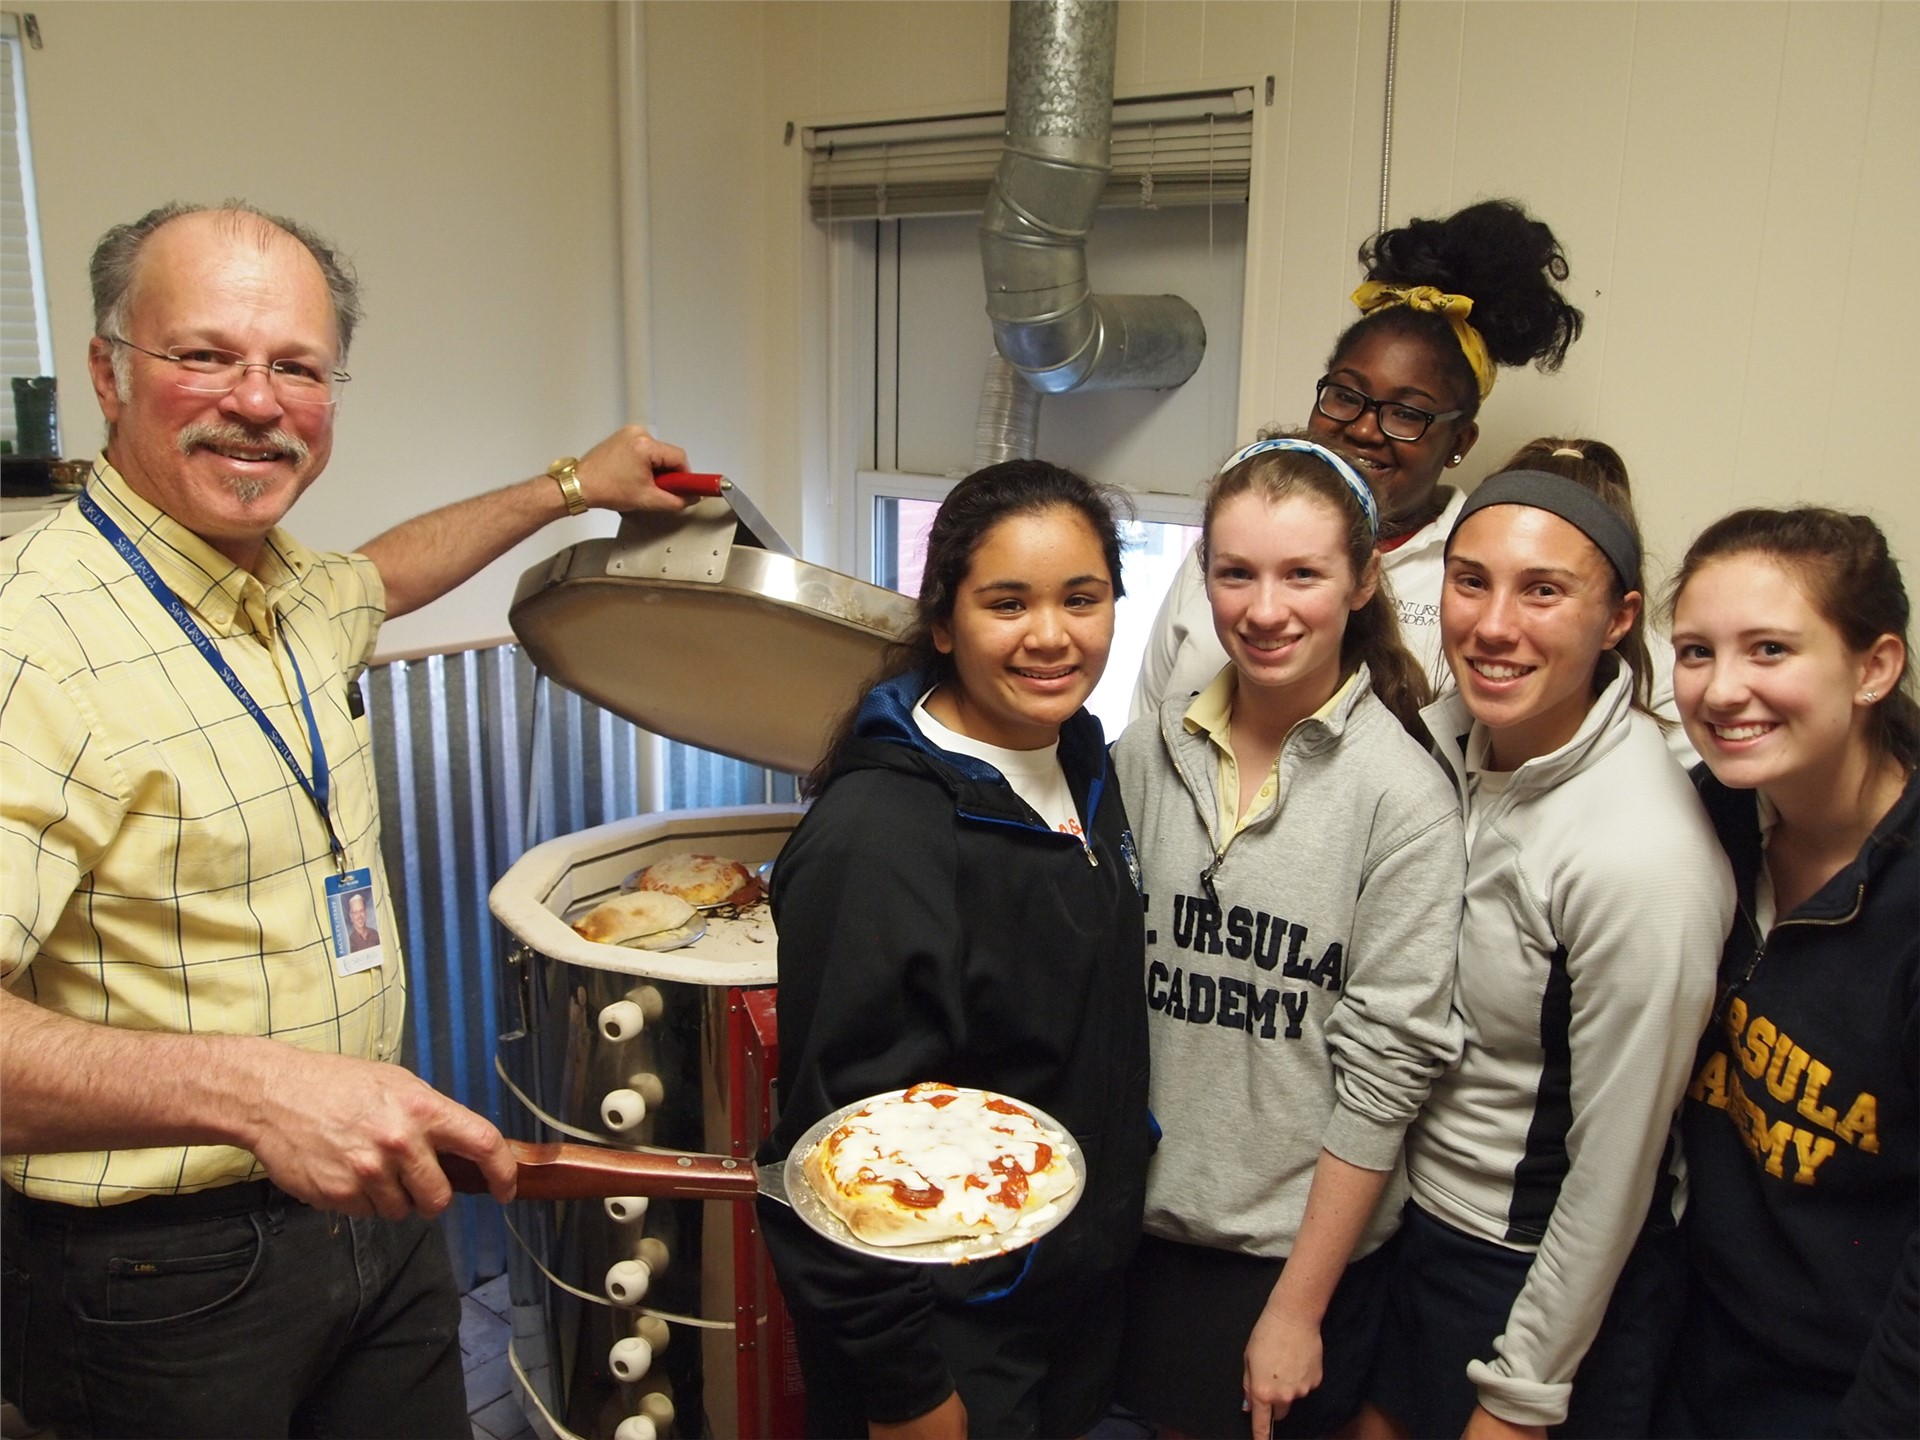 Pottery Students Enjoy the End of the School Year by Making Pizza in the Kiln!